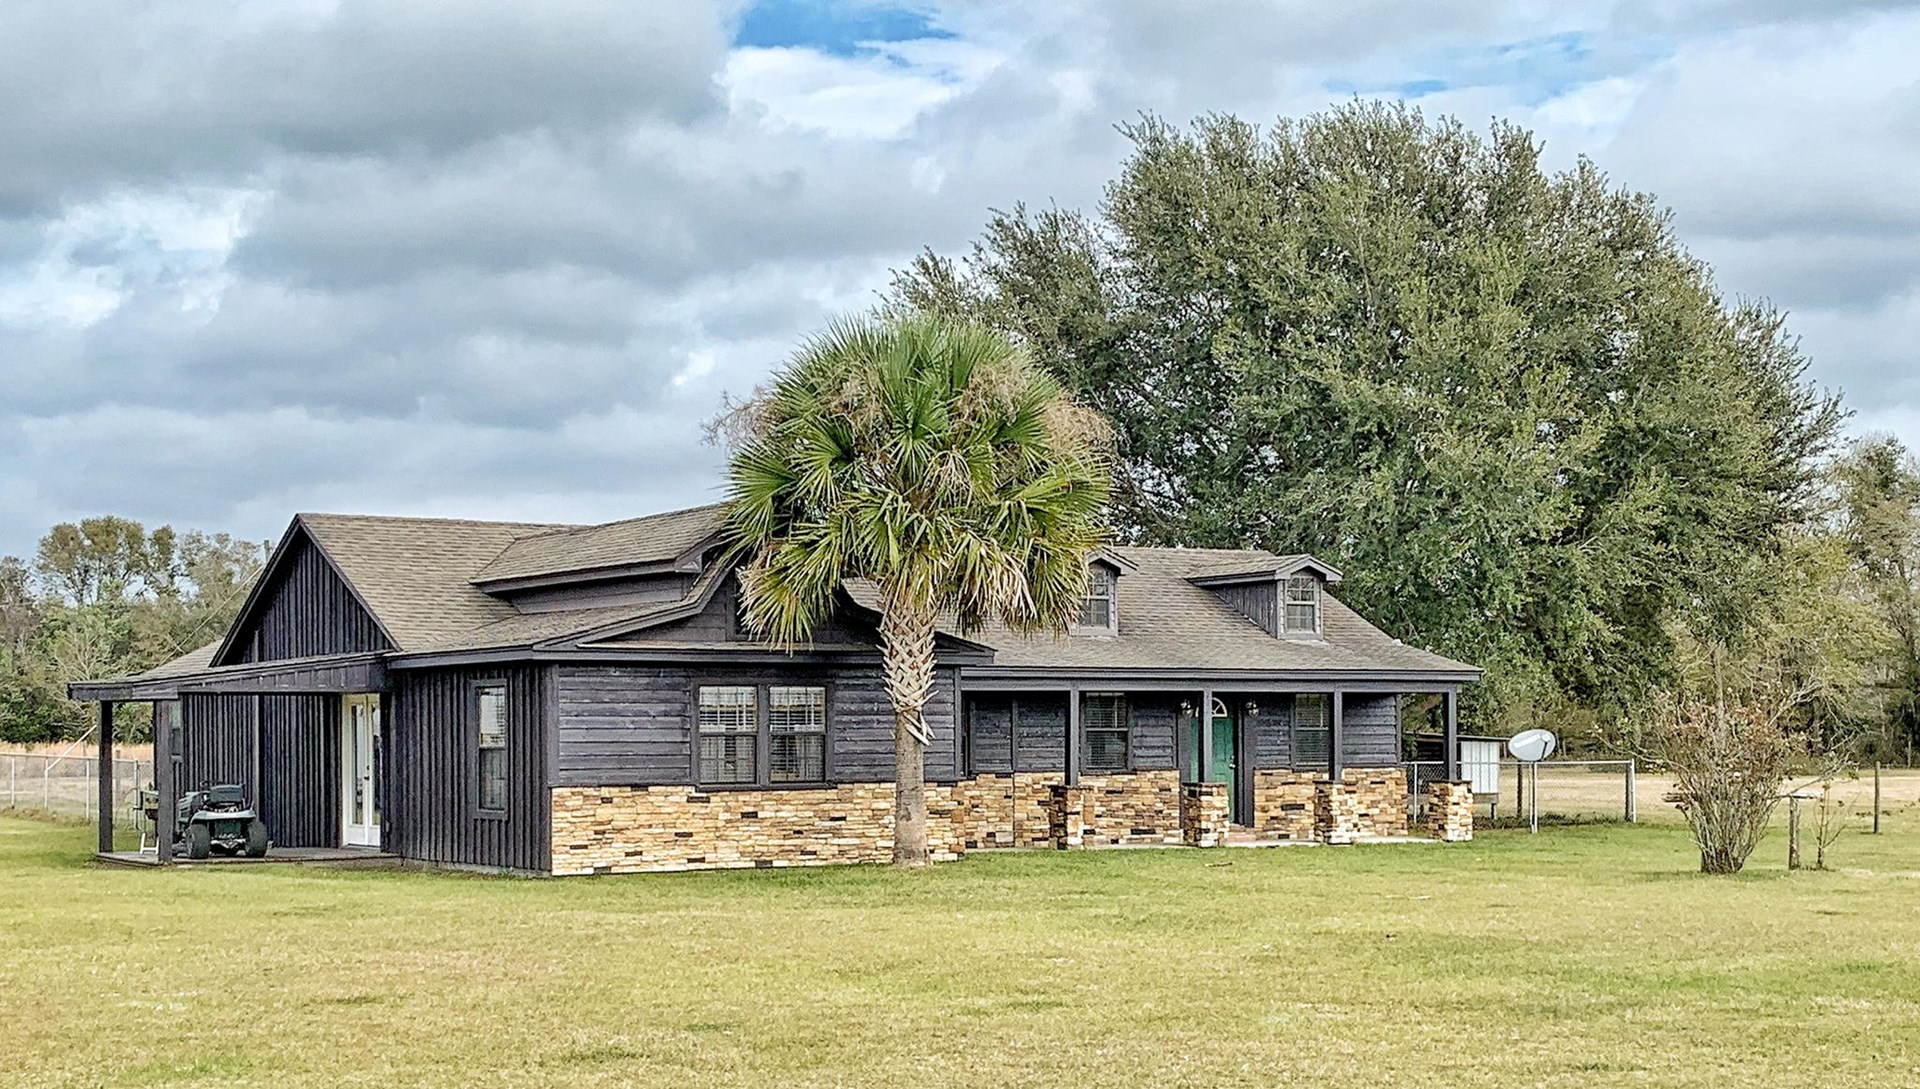 EQUINE PROPERTY WITH HOME AND BARN FOR SALE - Trenton FL